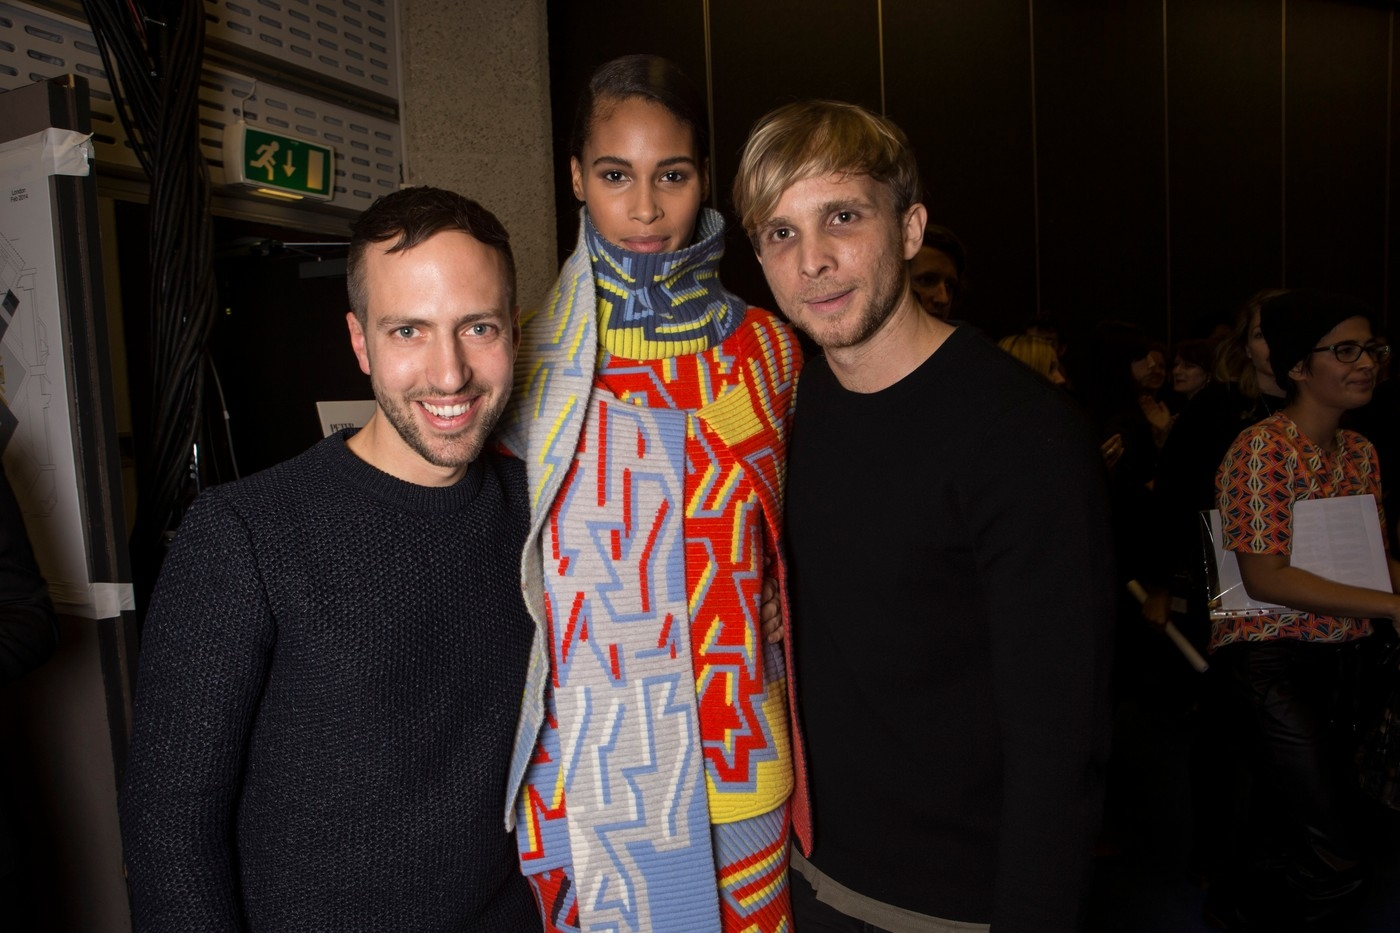 Peter_Pilotto__Backstage_London_Fashion_Week_Fall_Winter_2014,february2014